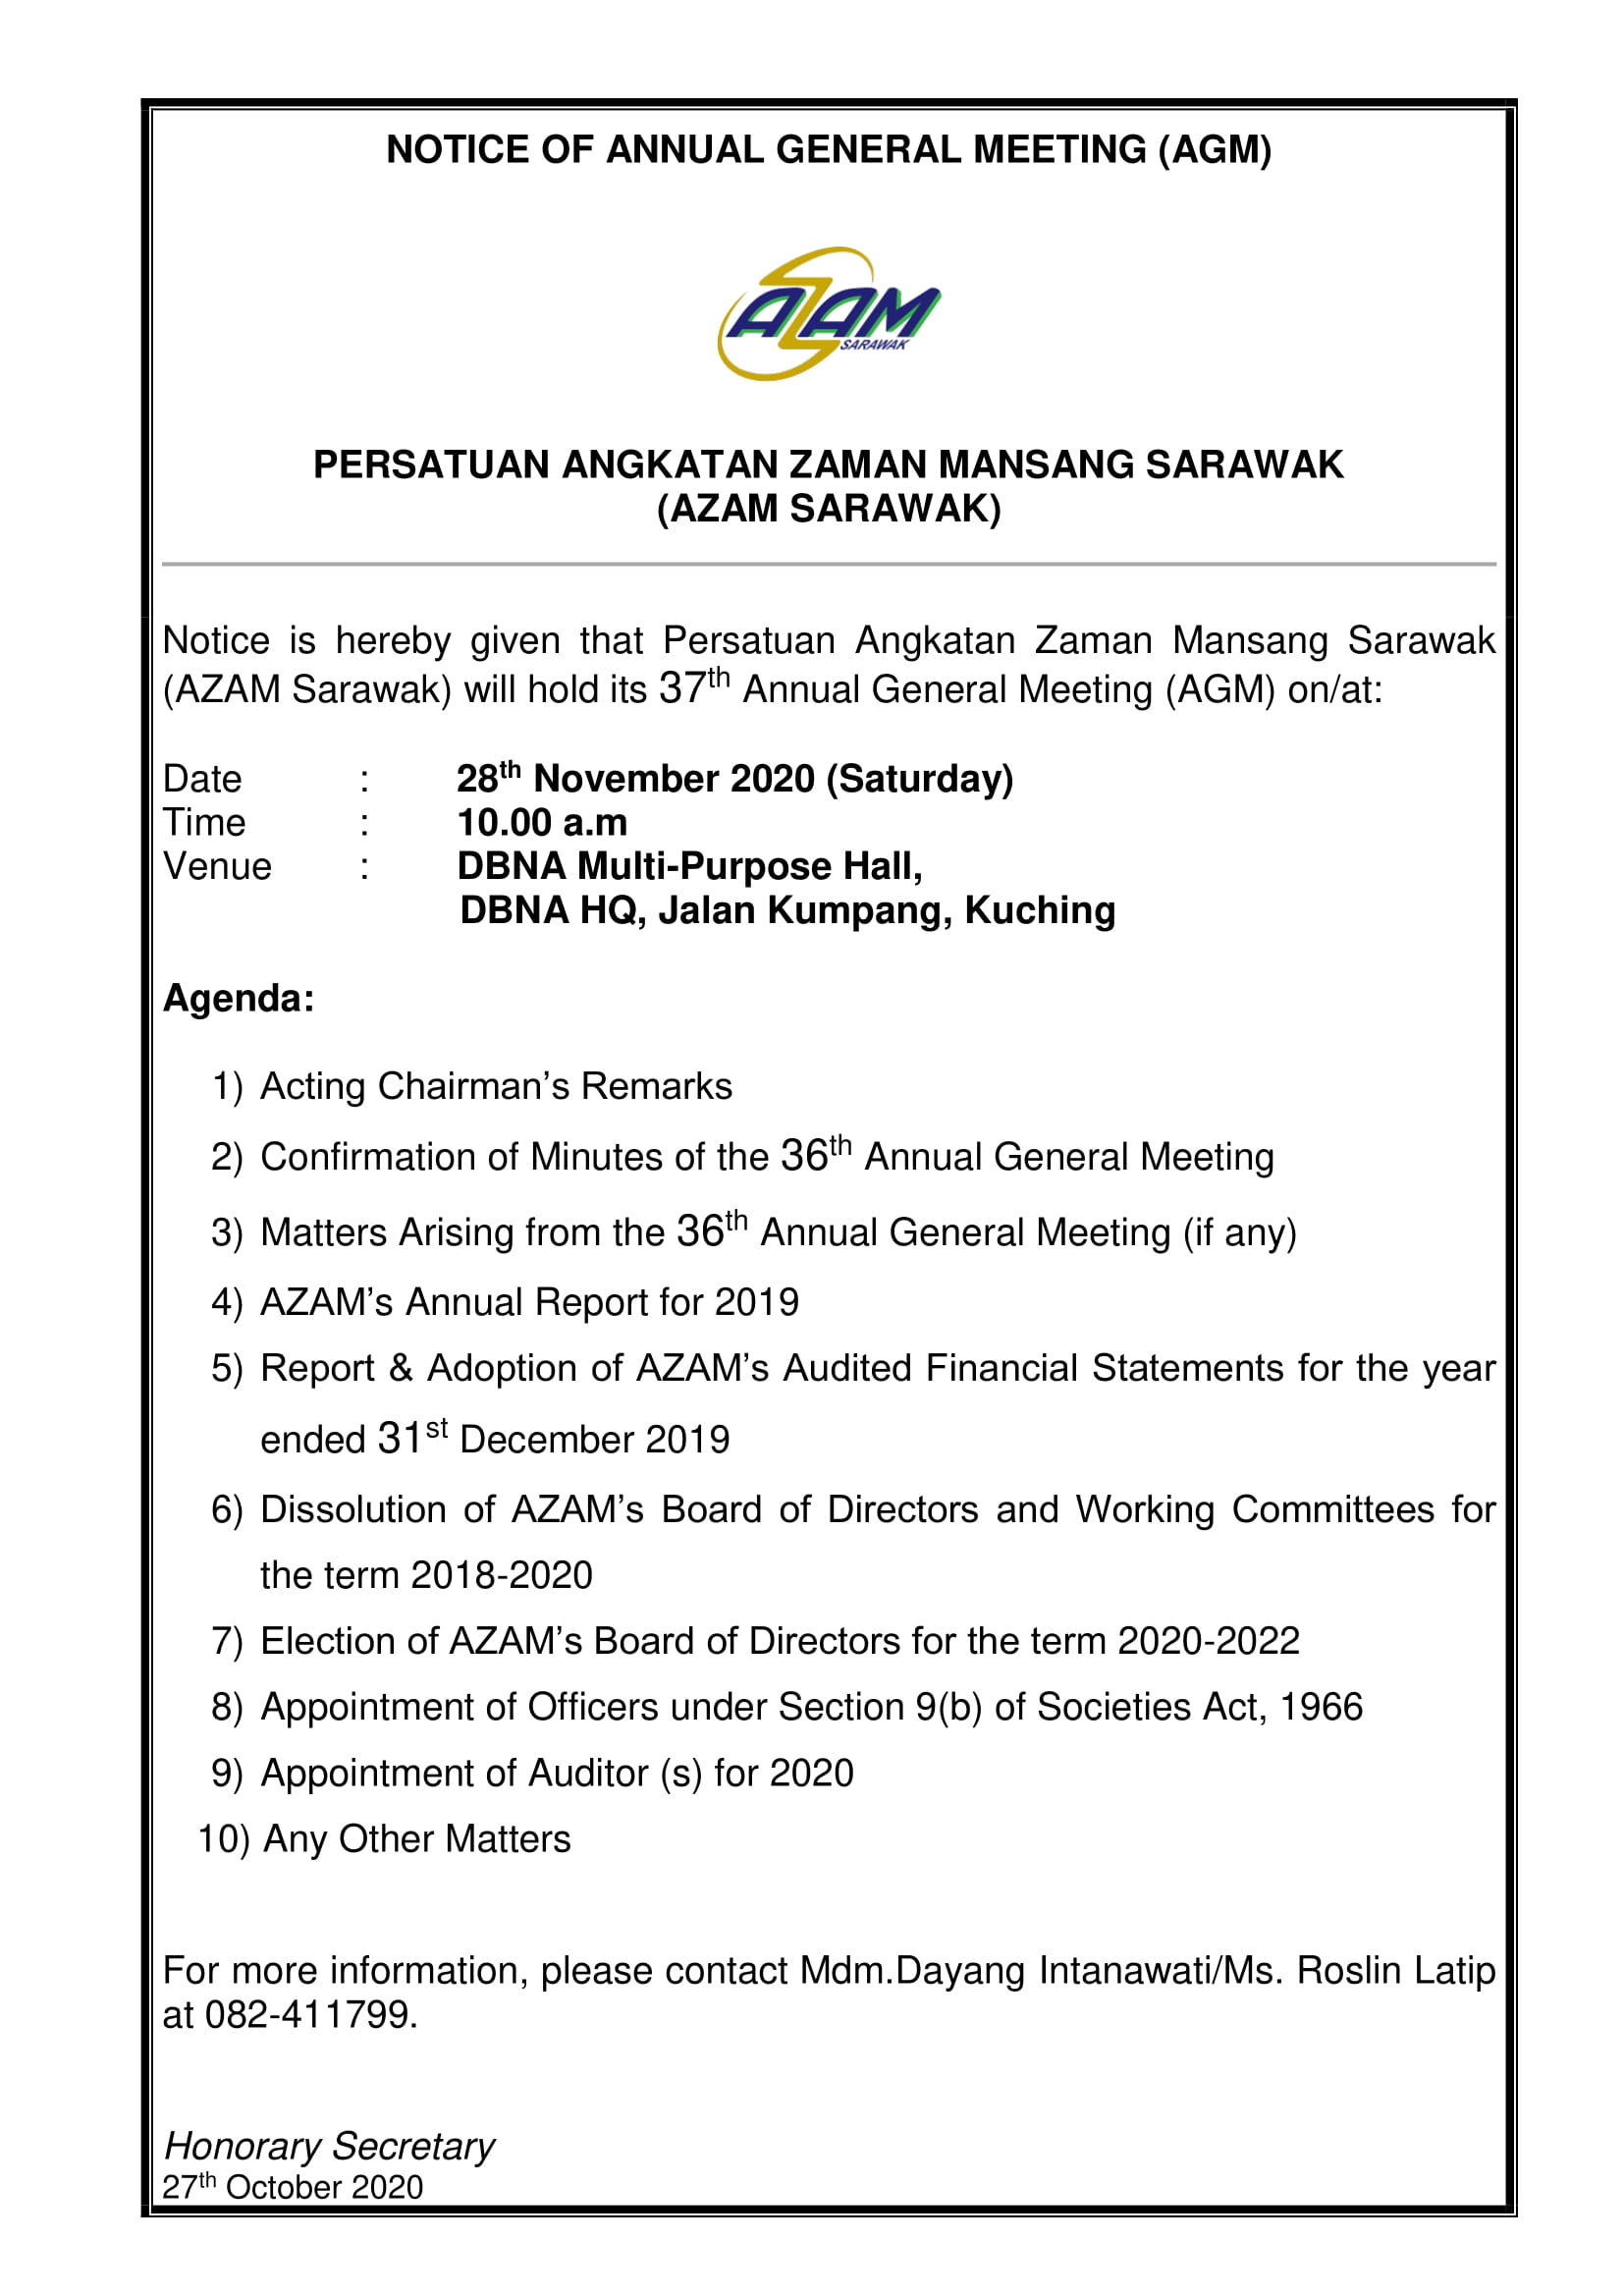 notice of 37th AGM_(ADVERTISEMENT)19.11-1